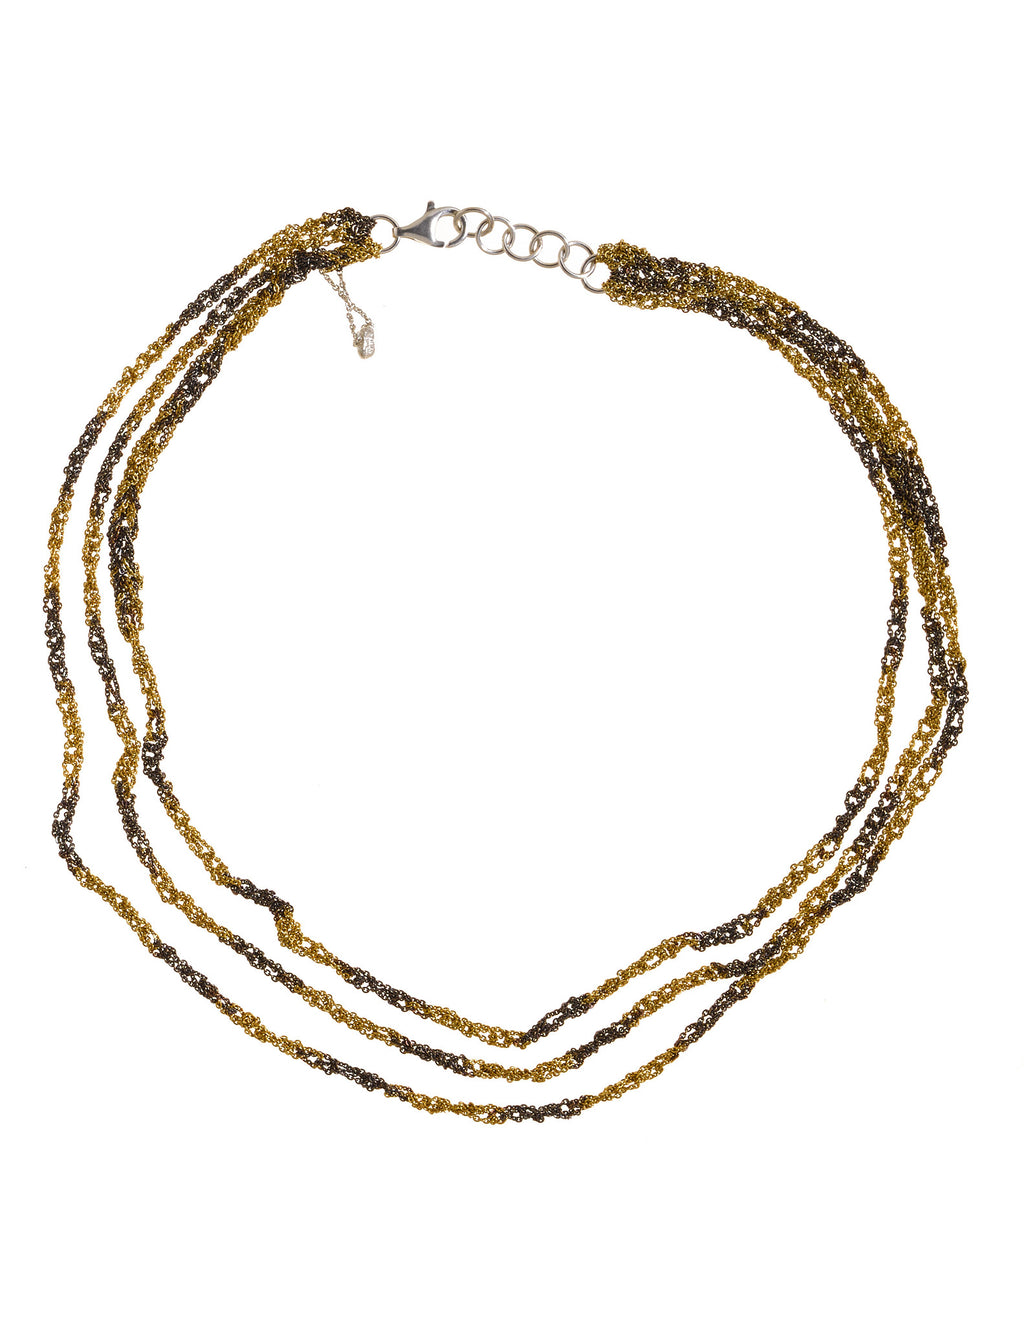 3-Tiered Simple Necklace in Gold Dalmatian